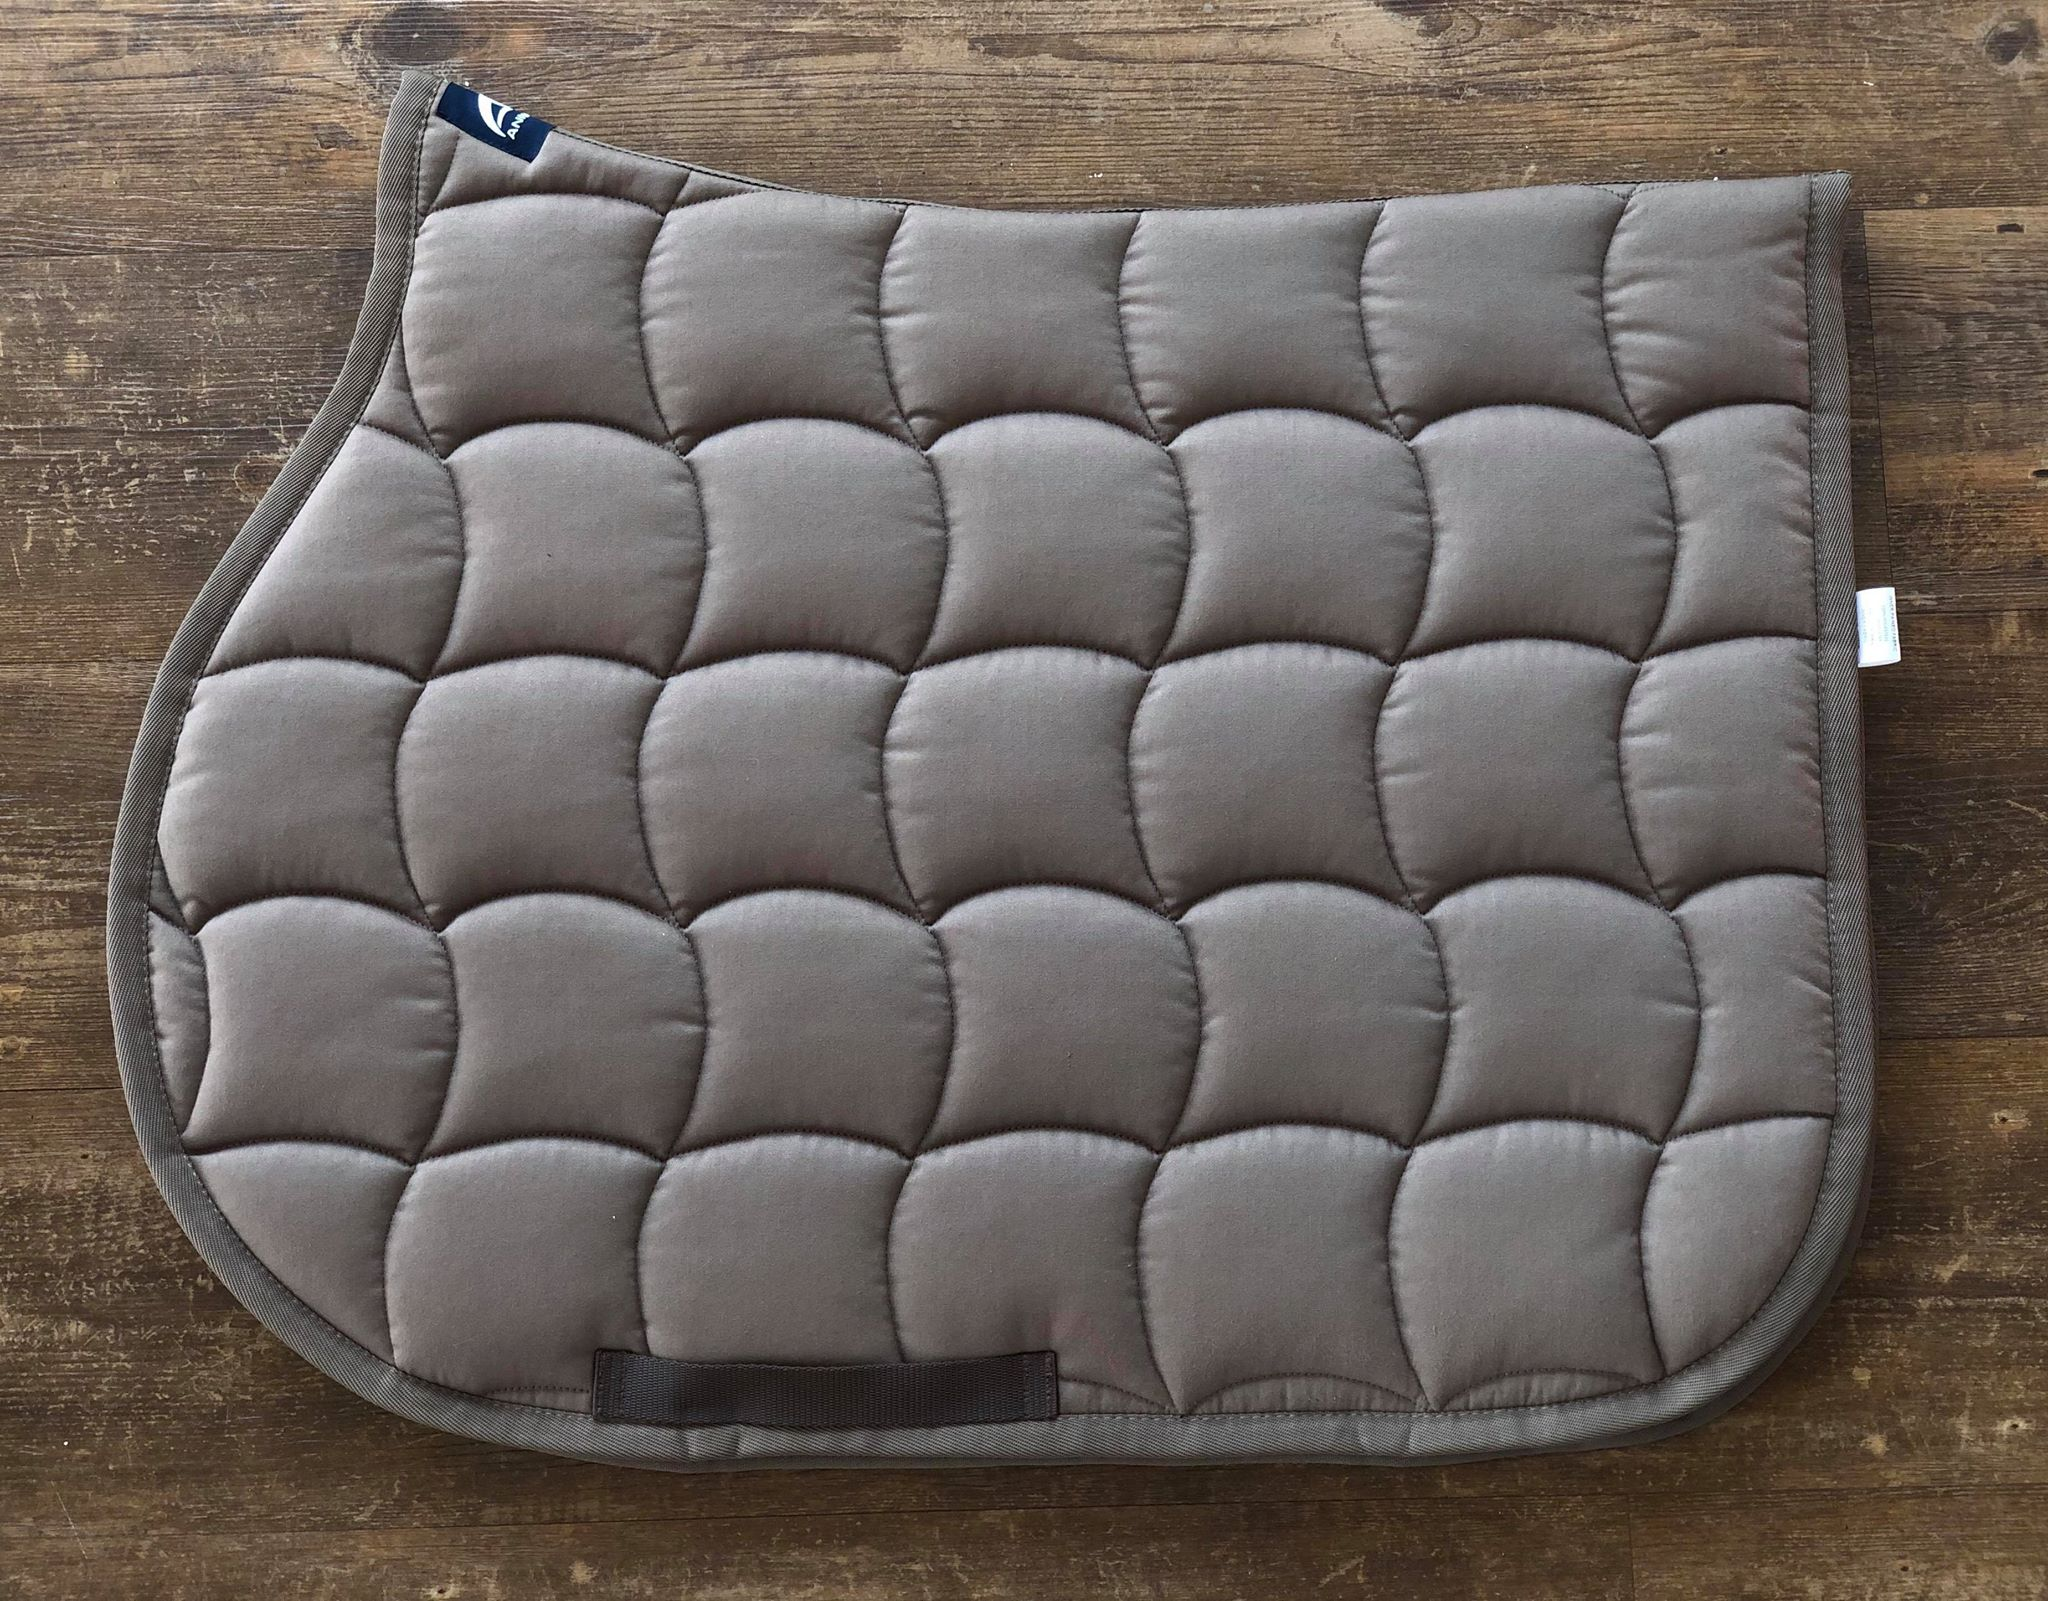 IN STOCK - Tortora Saddle Pad